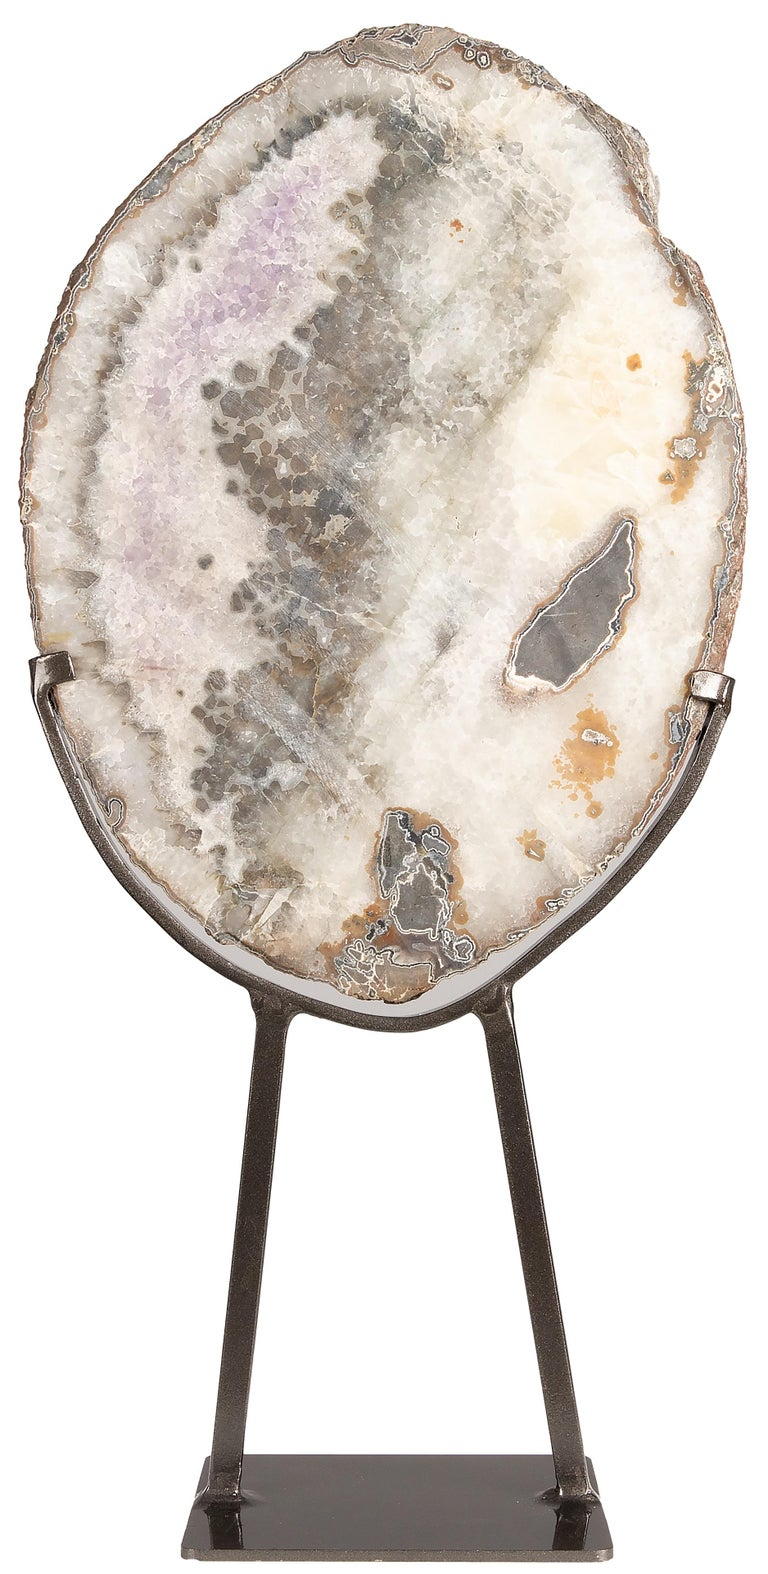 Uruguayan Geode Slice with Mix of Agate, White Quartz and Calcite Formation on Metal Stand For Sale